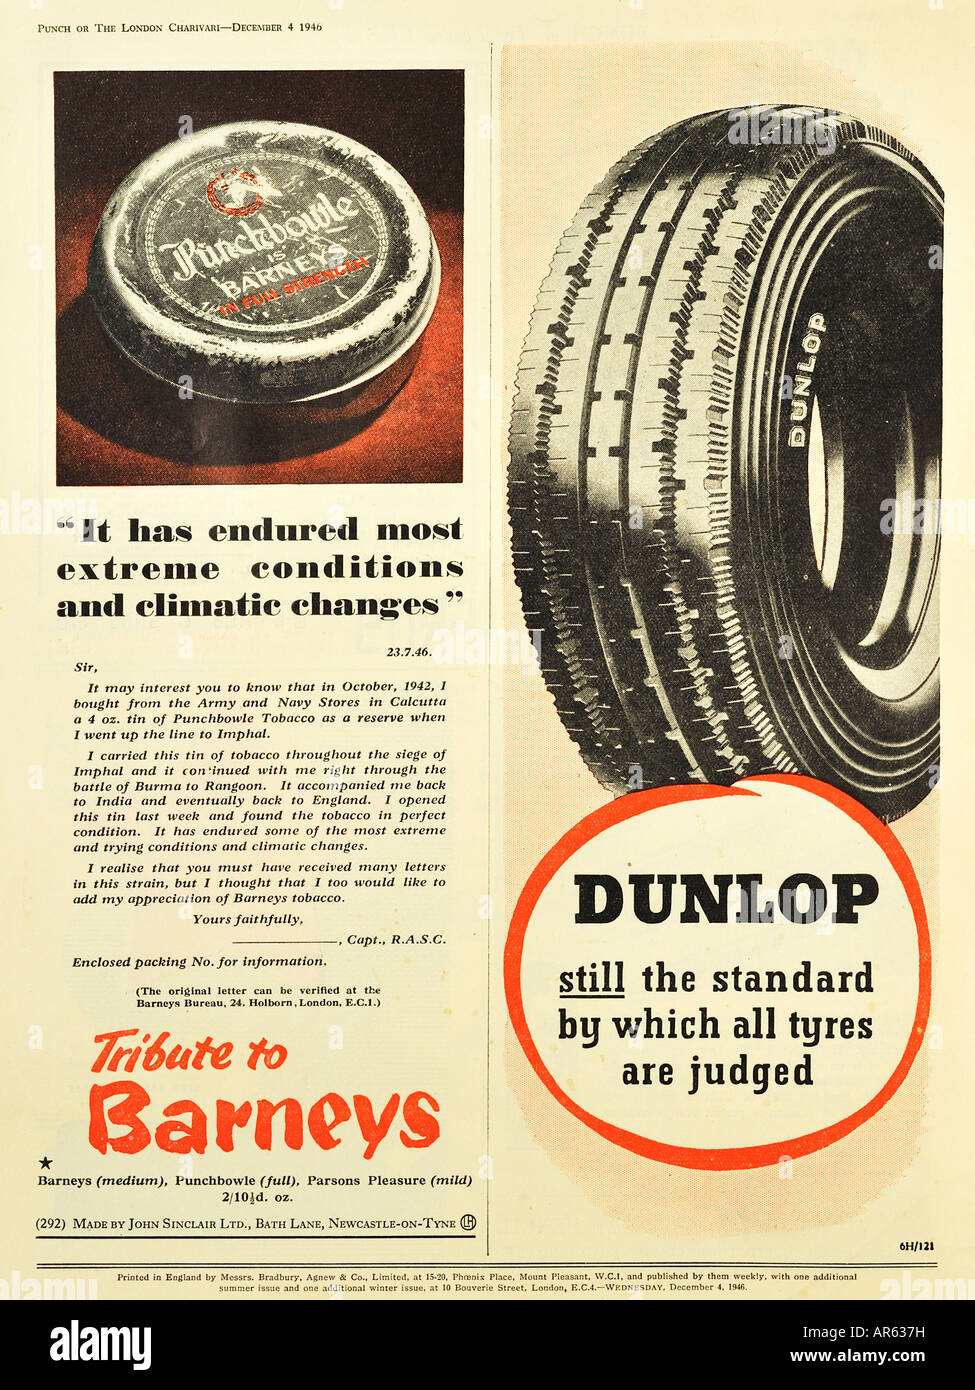 Barney's Tobacco and Dunlop Tyres Advertisements from 1946 For Editorial Use Only - Stock Image